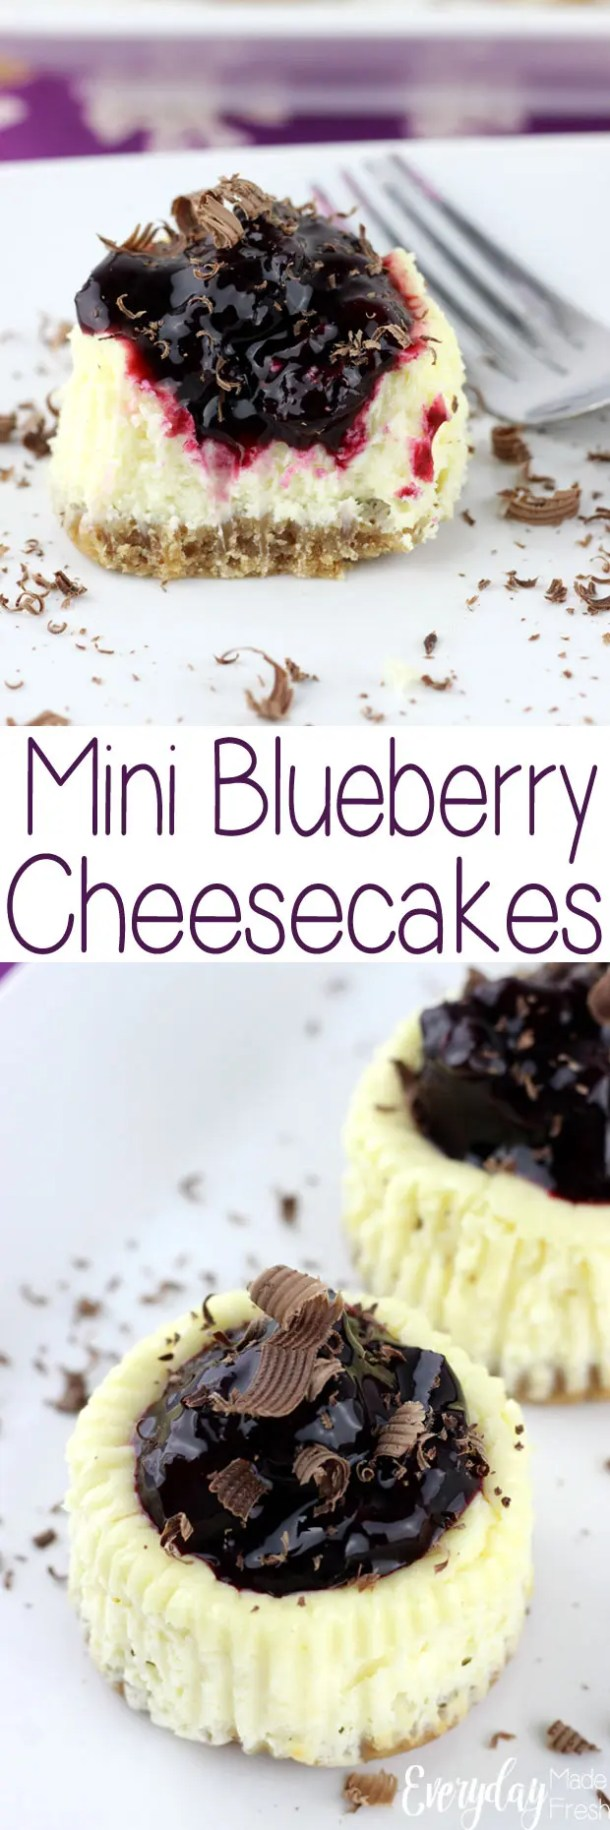 These Mini Blueberry Cheesecakes are made with Greek yogurt and low fat cream cheese, for a healthier choice. You won't even be able to taste the difference! | EverydayMadeFresh.com